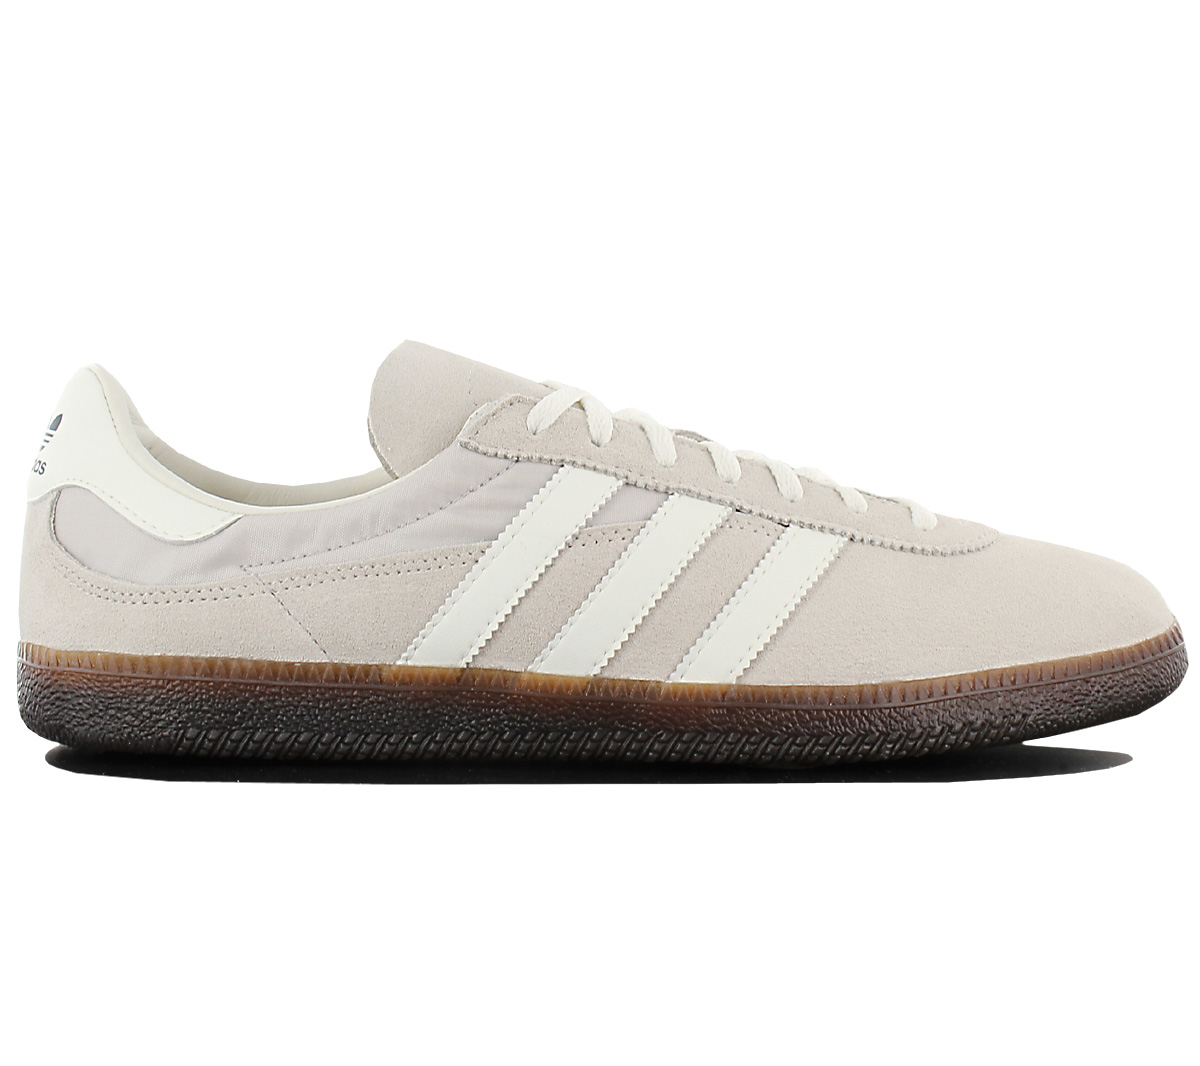 Details about Adidas ORIGINALS GT Wensley Special SPZL Mens Trainer Shoes Sneakers cg2925 show original title